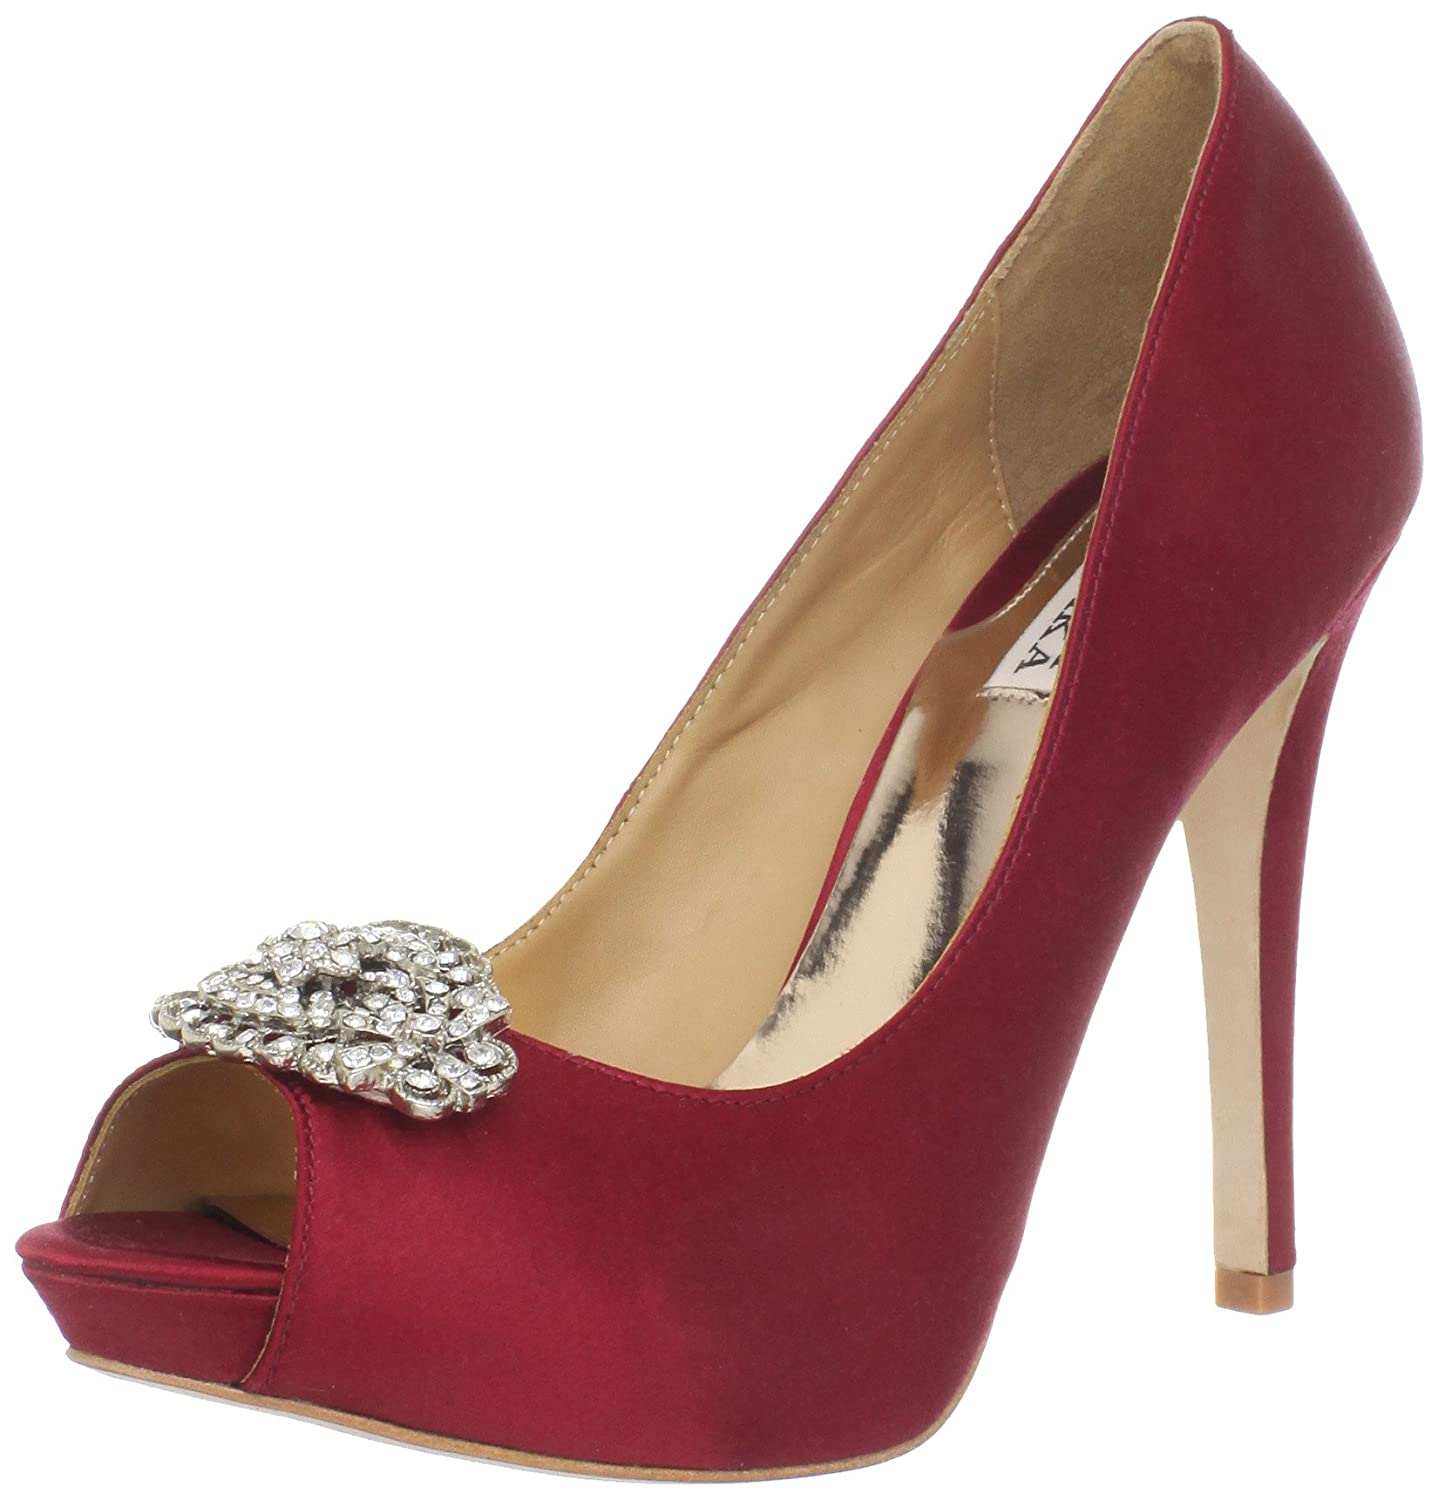 Badgley Mischka Women's Goodie Peep-Toe Pump